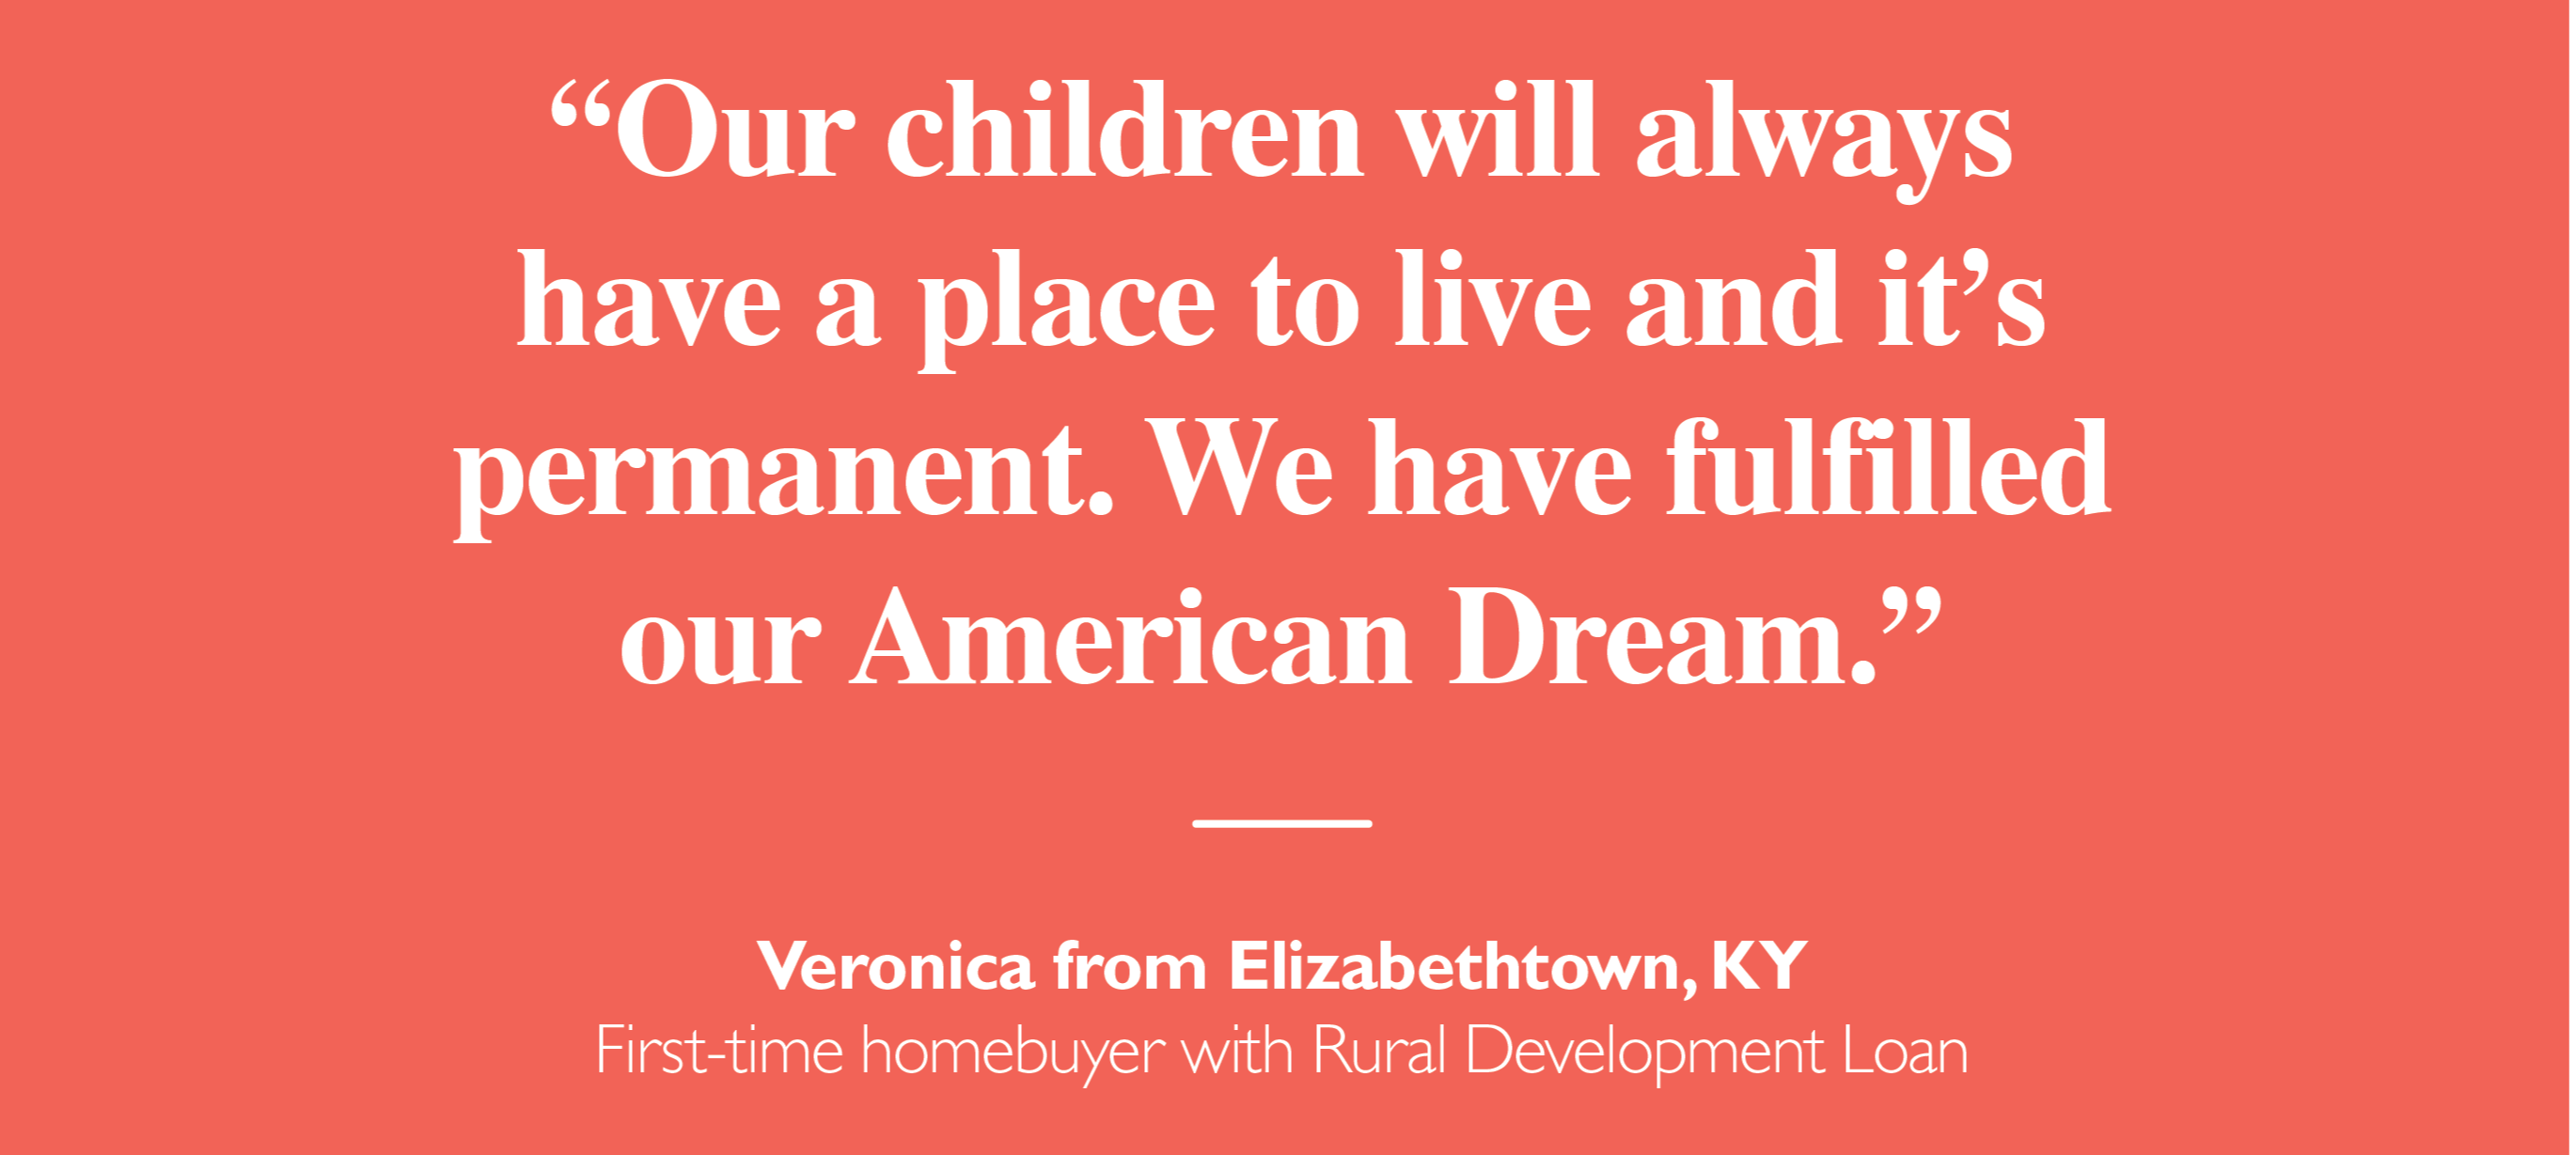 Quote from Veronica in Elizabethtown, KY